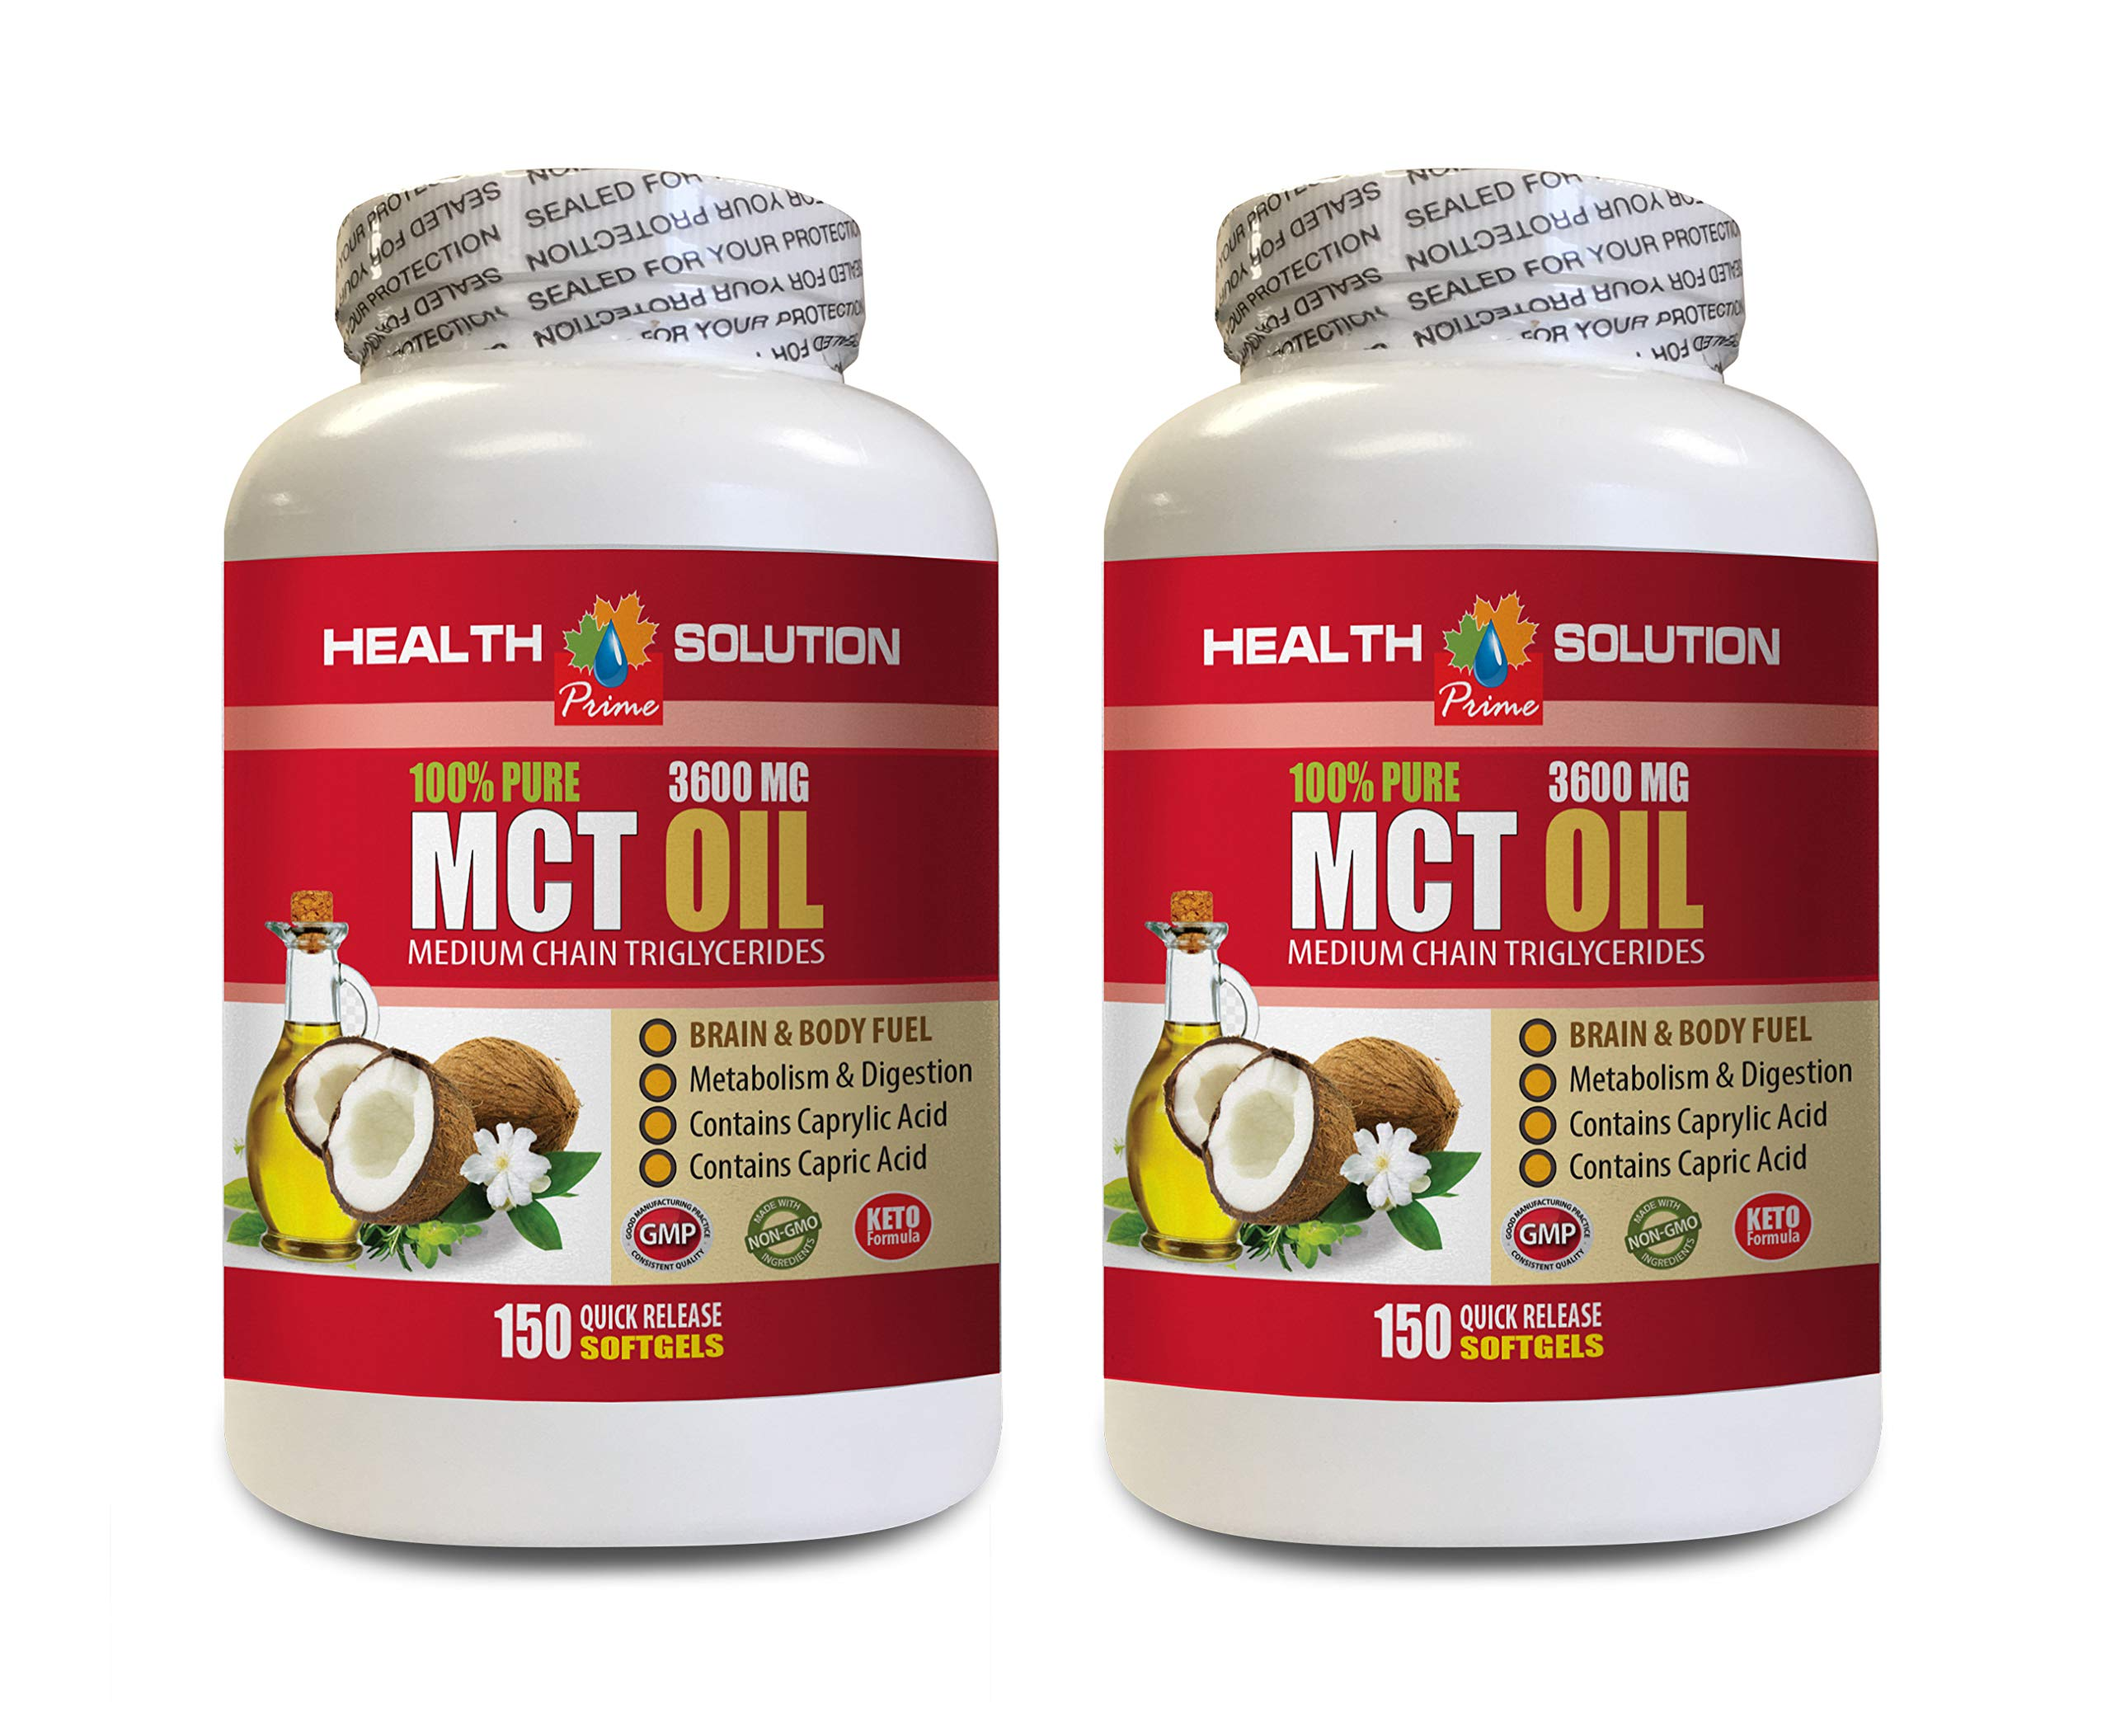 Weight Loss for Men Belly Fat - MCT Oil 3600MG - 100% Pure - mct Oil Pills Nature - 2 Bottles 300 Softgels